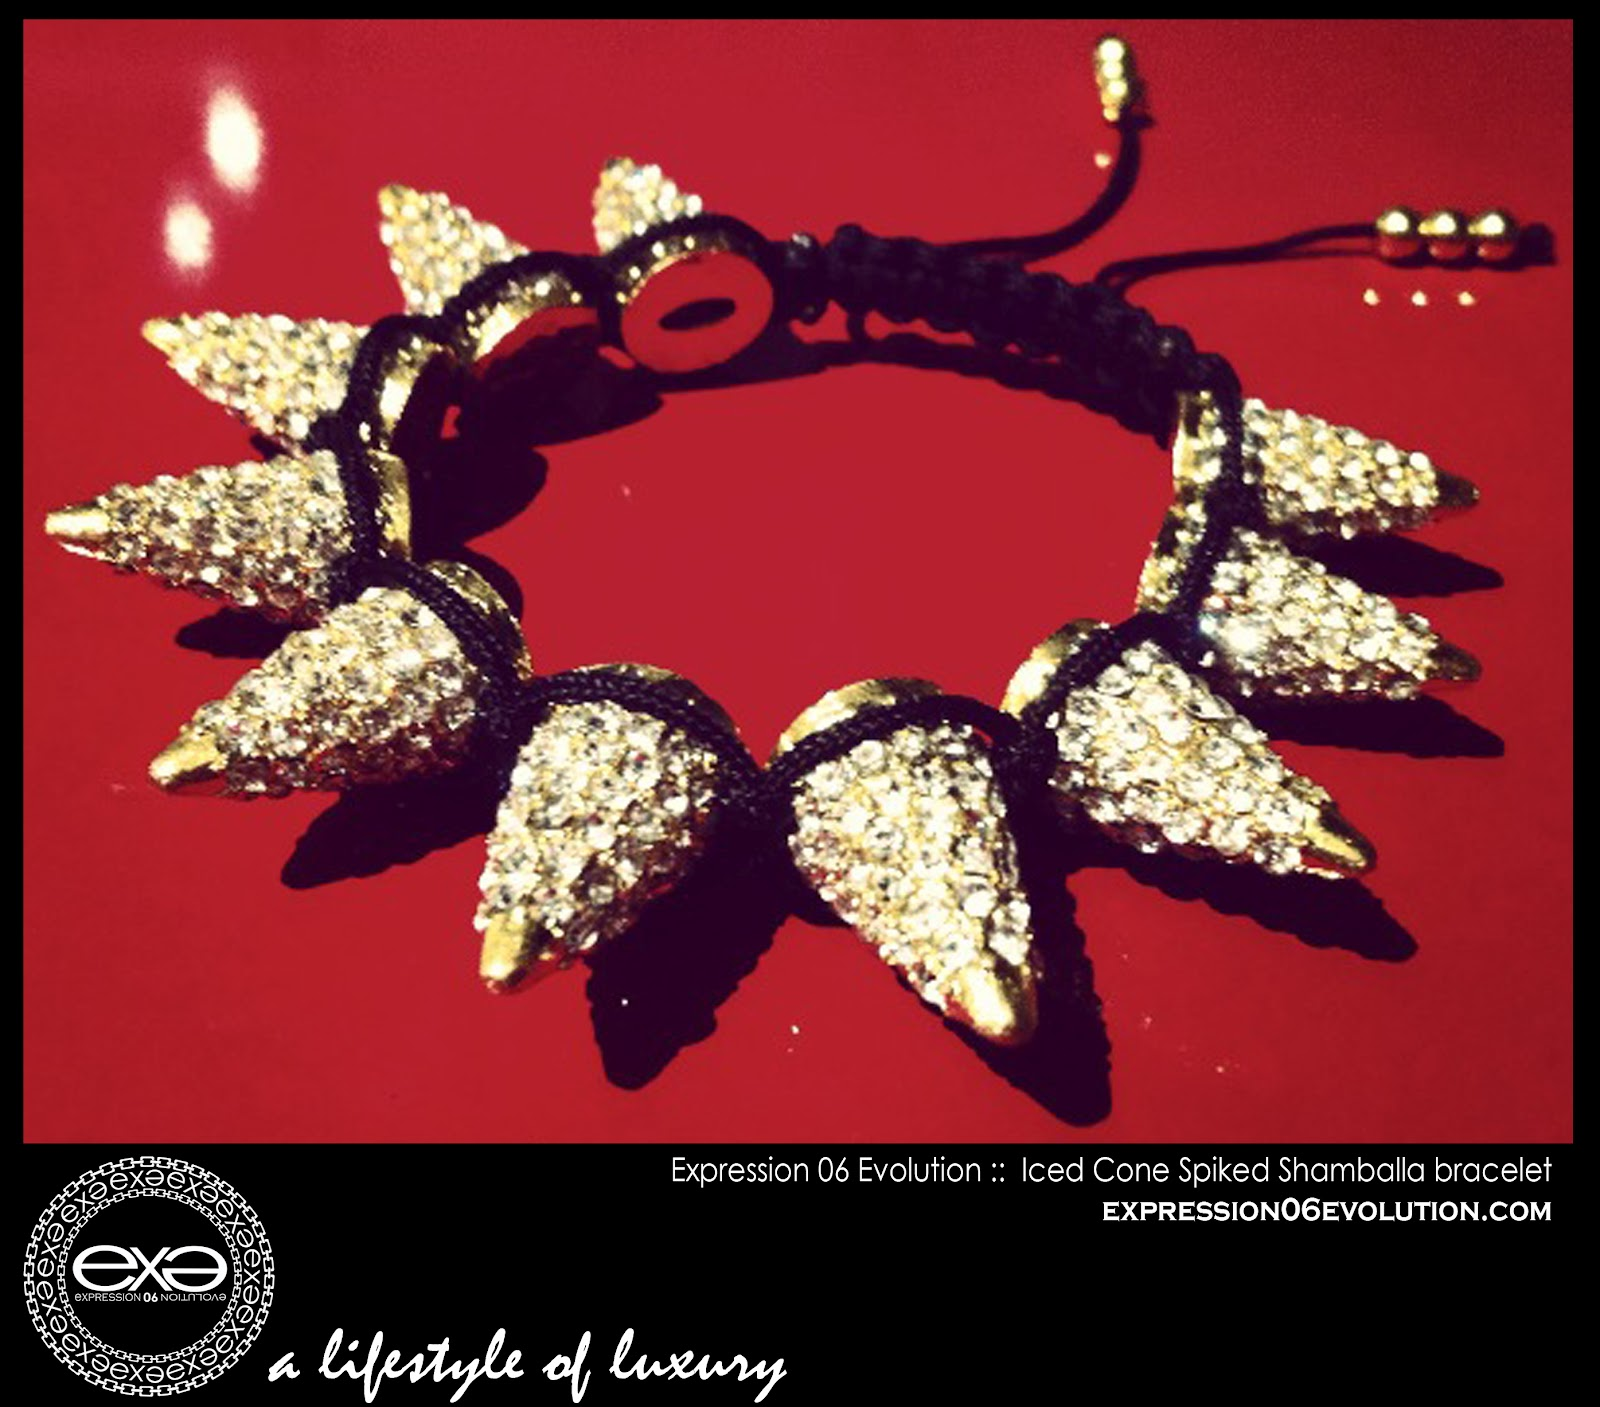 http://4.bp.blogspot.com/-uhn6gA9Ip8Q/UCY49xlJYYI/AAAAAAAAB20/XsOci8gu42M/s1600/EXPRESSION+06+EVOLUTION+-+SPIKED+SHAMBALLA+BRACLET+-+GOLD+cone+SPIKES+WITH+white+stones+-+EXPRESSIVE+CLOTHING+LLC+-+DUSHON+EX+DANIELS+-+ALEXIS+BELSKI+.jpg